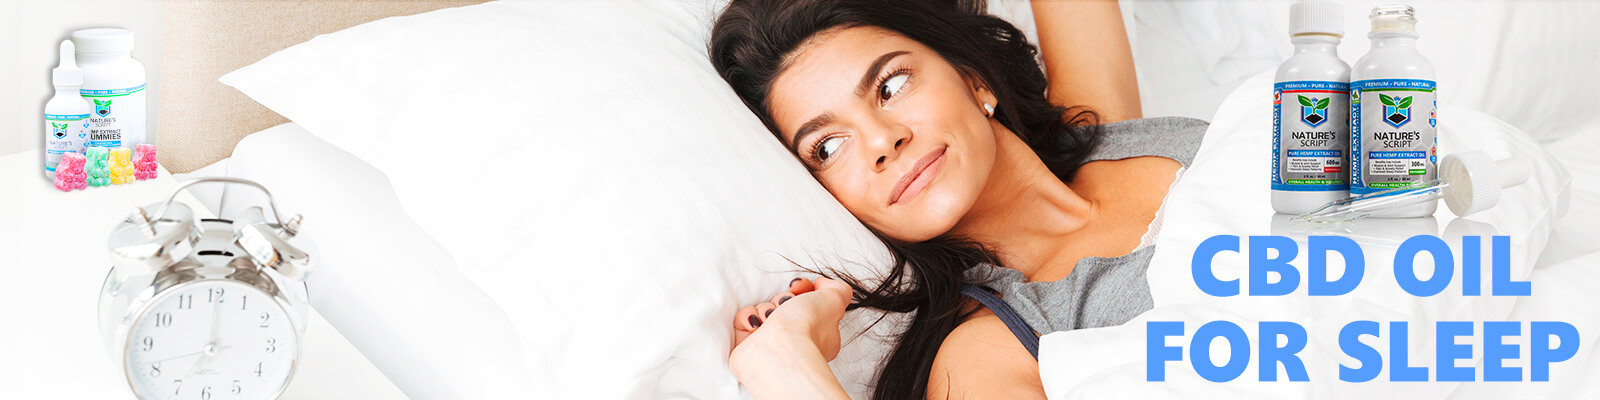 woman in bed cbd oil for sleep banner